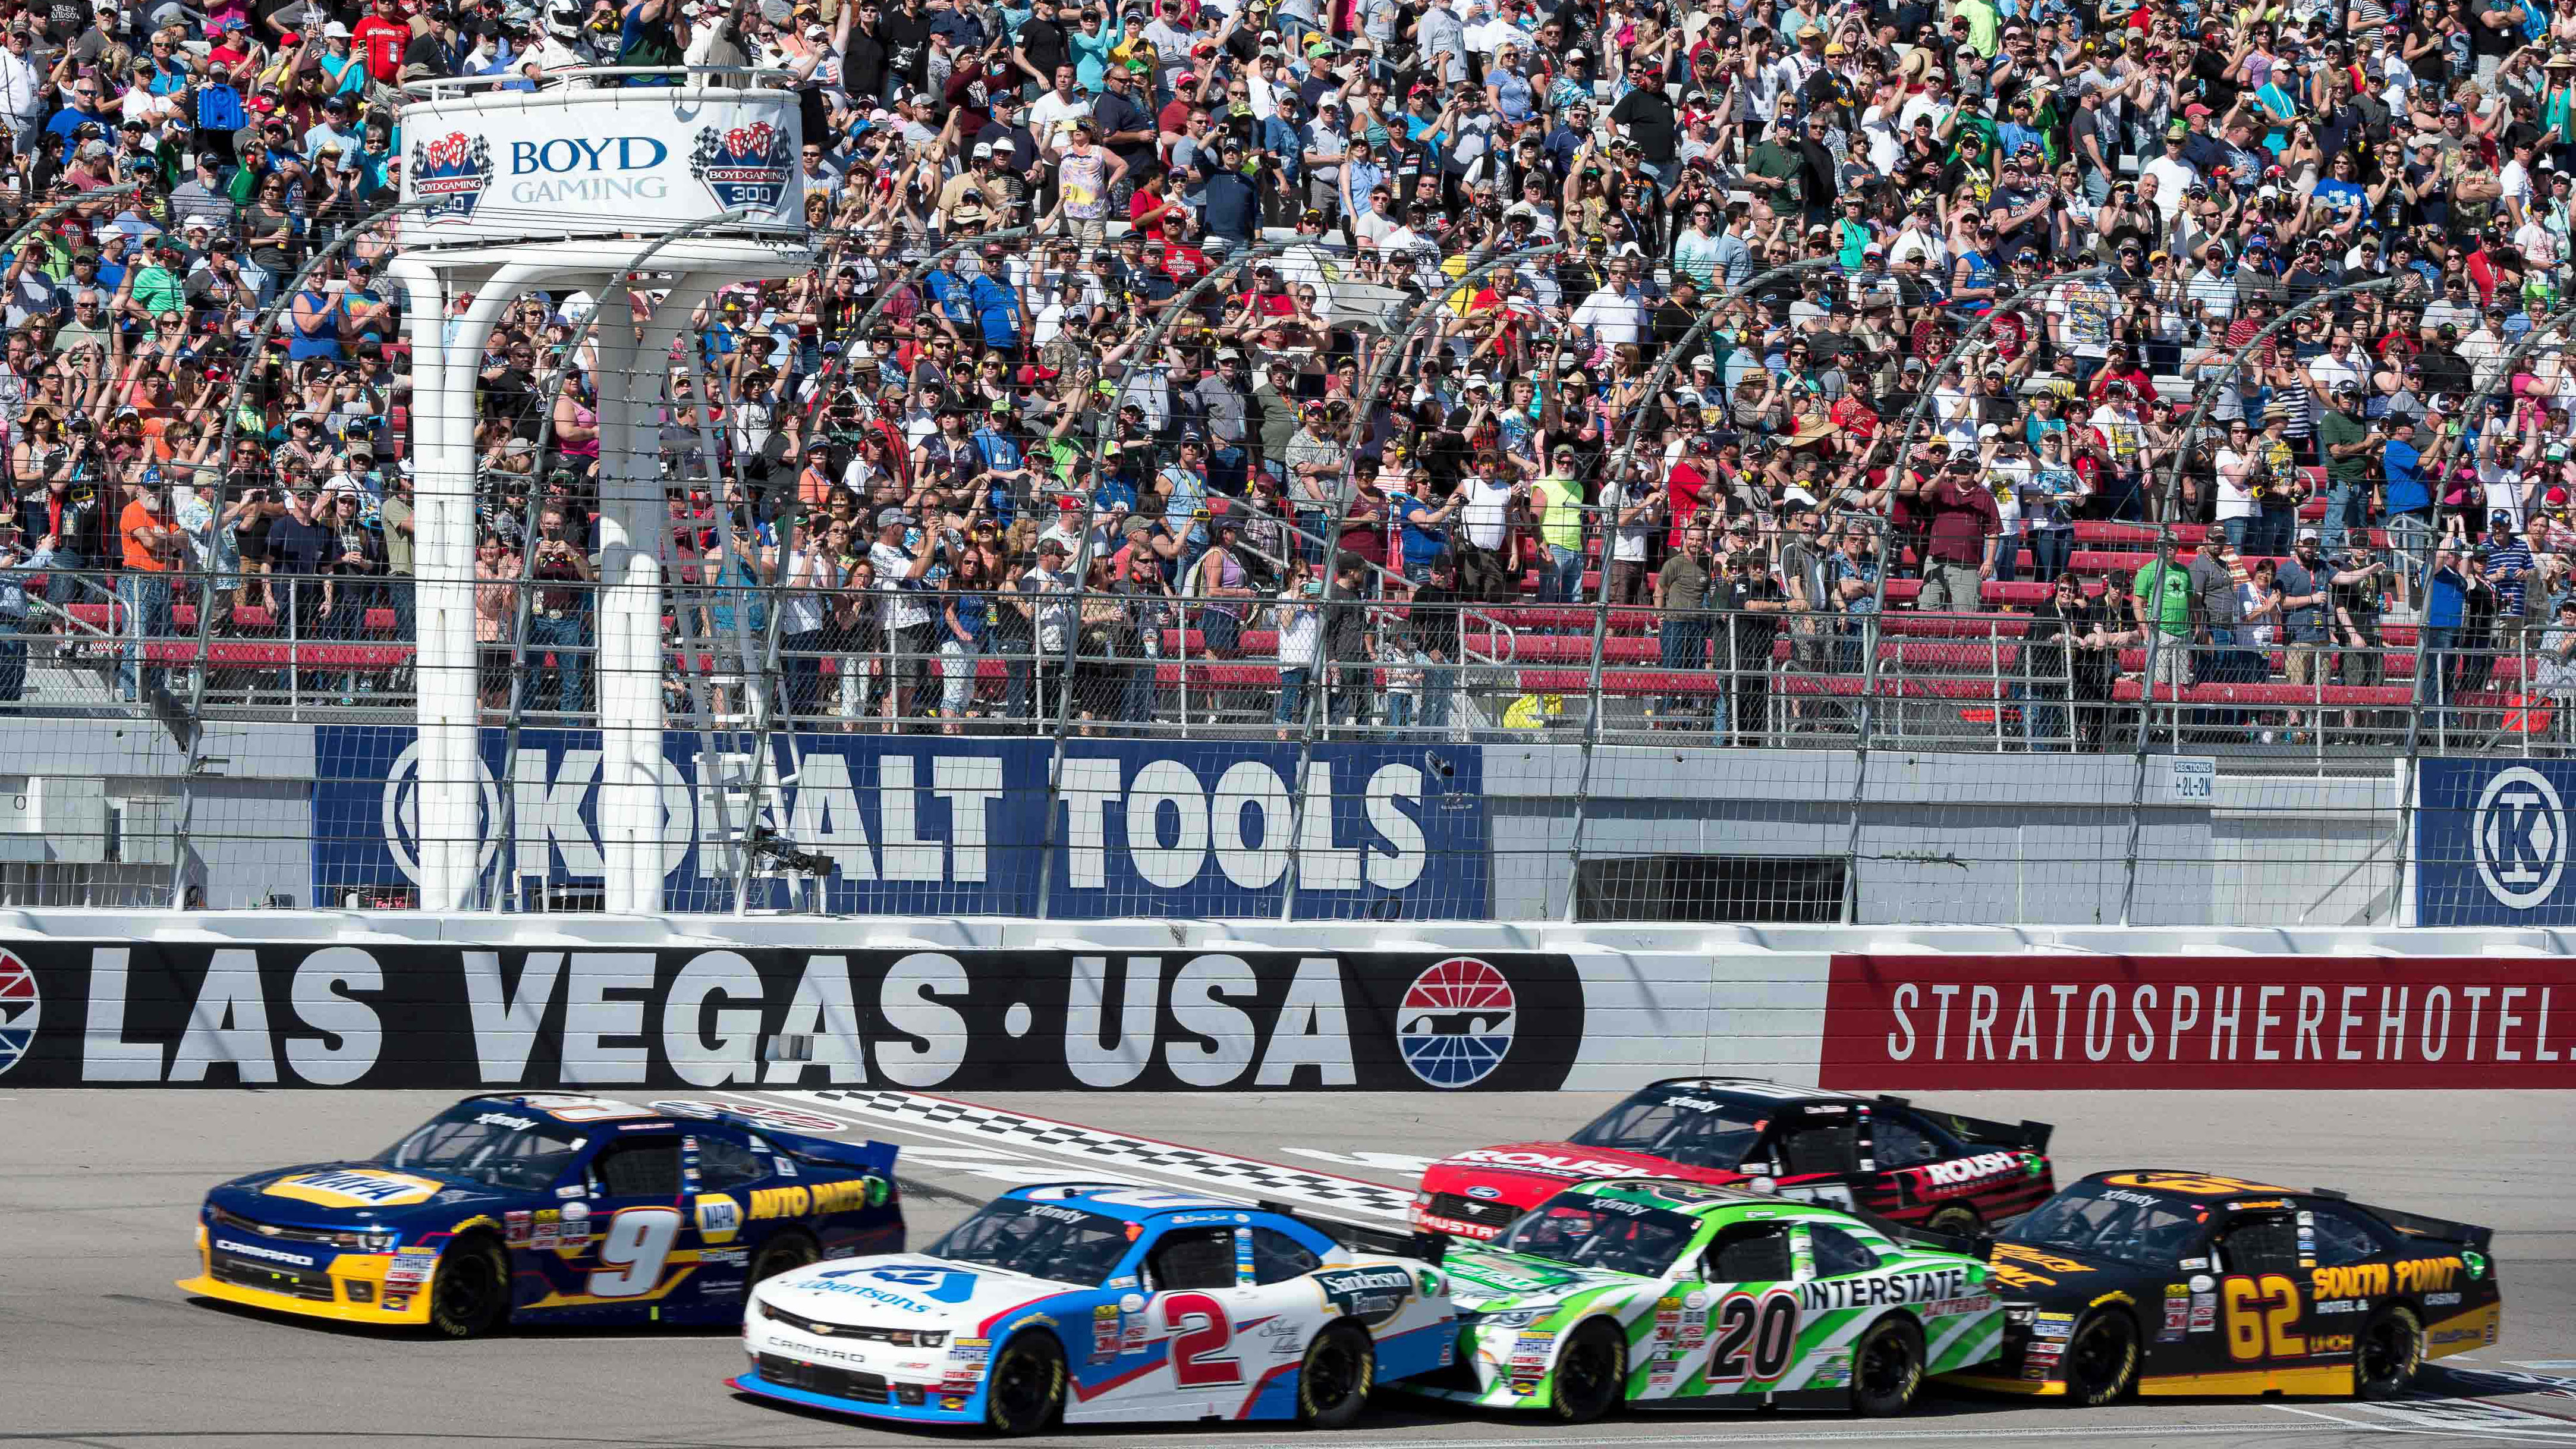 Mar 7, 2015; Las Vegas, NV, USA; NASCAR Xfinity Series driver Chase Elliott (9) and driver Brian Scott (2) and driver Erik Jones (20) and driver Brendan Gaughan (62) at the start of the Boyd Gaming 300 at Las Vegas Motor Speedway. Mandatory Credit: Jerome Miron-USA TODAY Sports